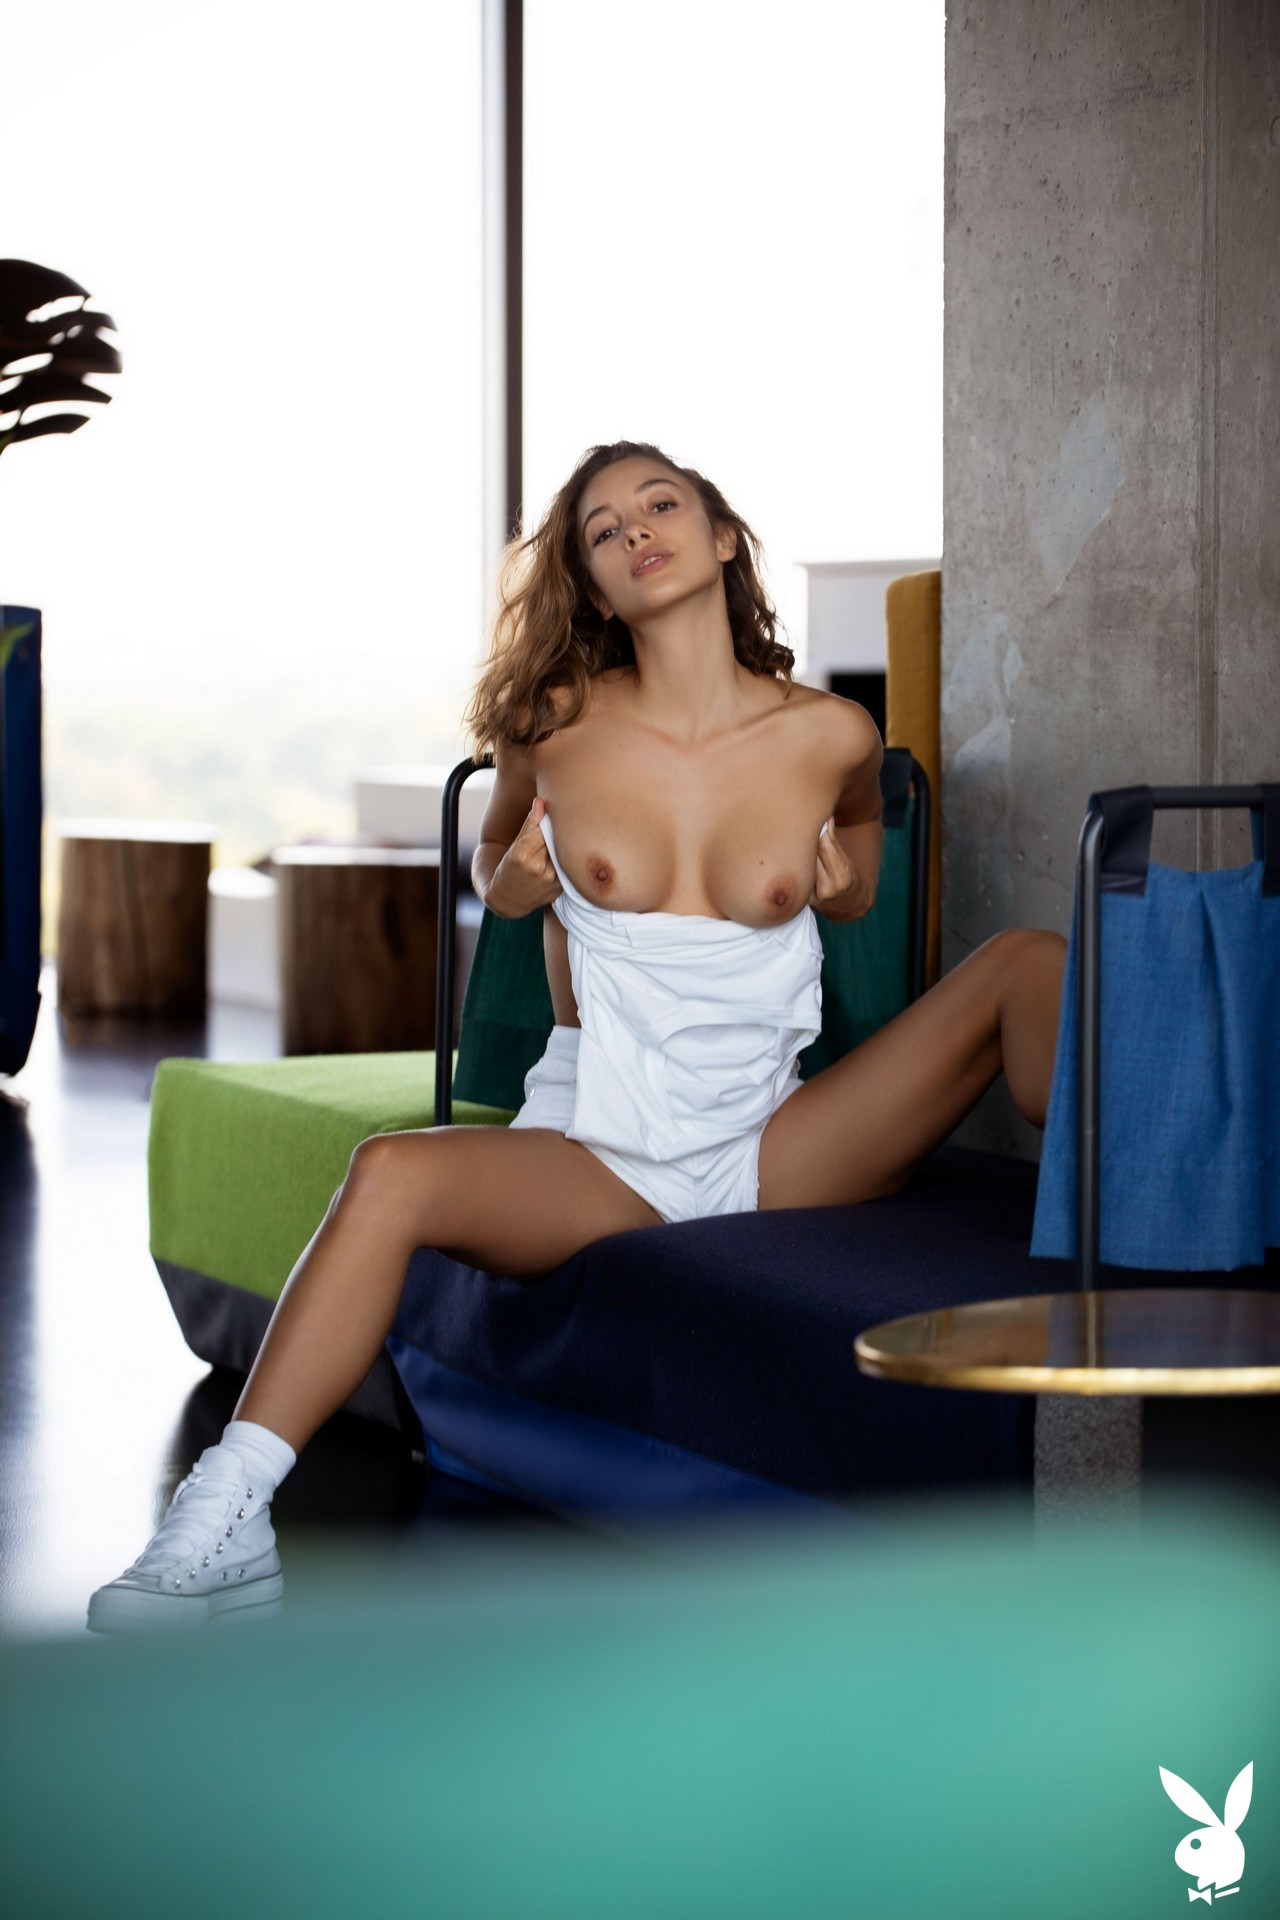 Calypso Muse In Lofty Views Playboy Plus (9)